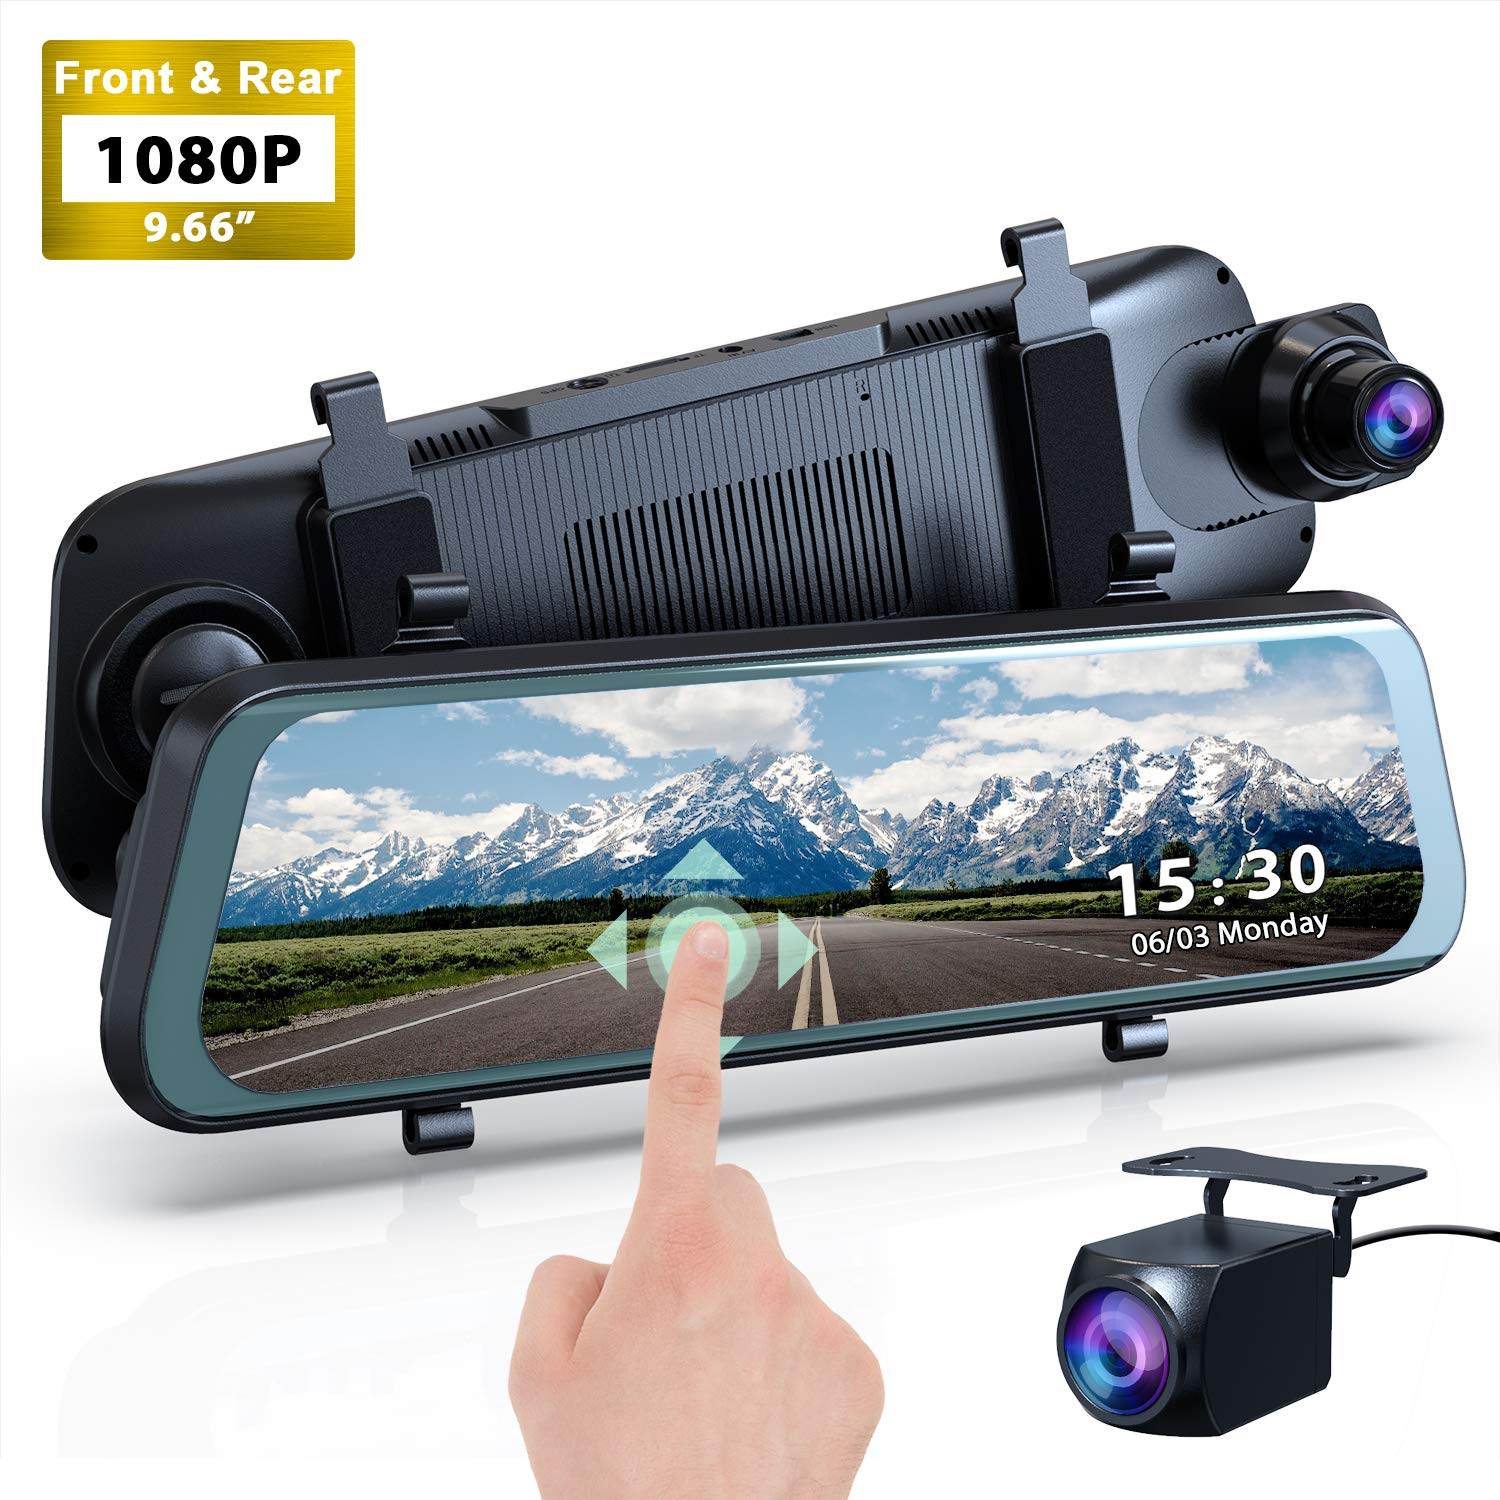 Mirror Dash Cam Backup Camera, 1080P HD 9.66'' Streaming Media Full Touch Screen Car Camera Featured with 170° Front Camera, 160° Wide Angle Rear Camera, Night Vision, G-Sensor, WDR, Parking Monitor